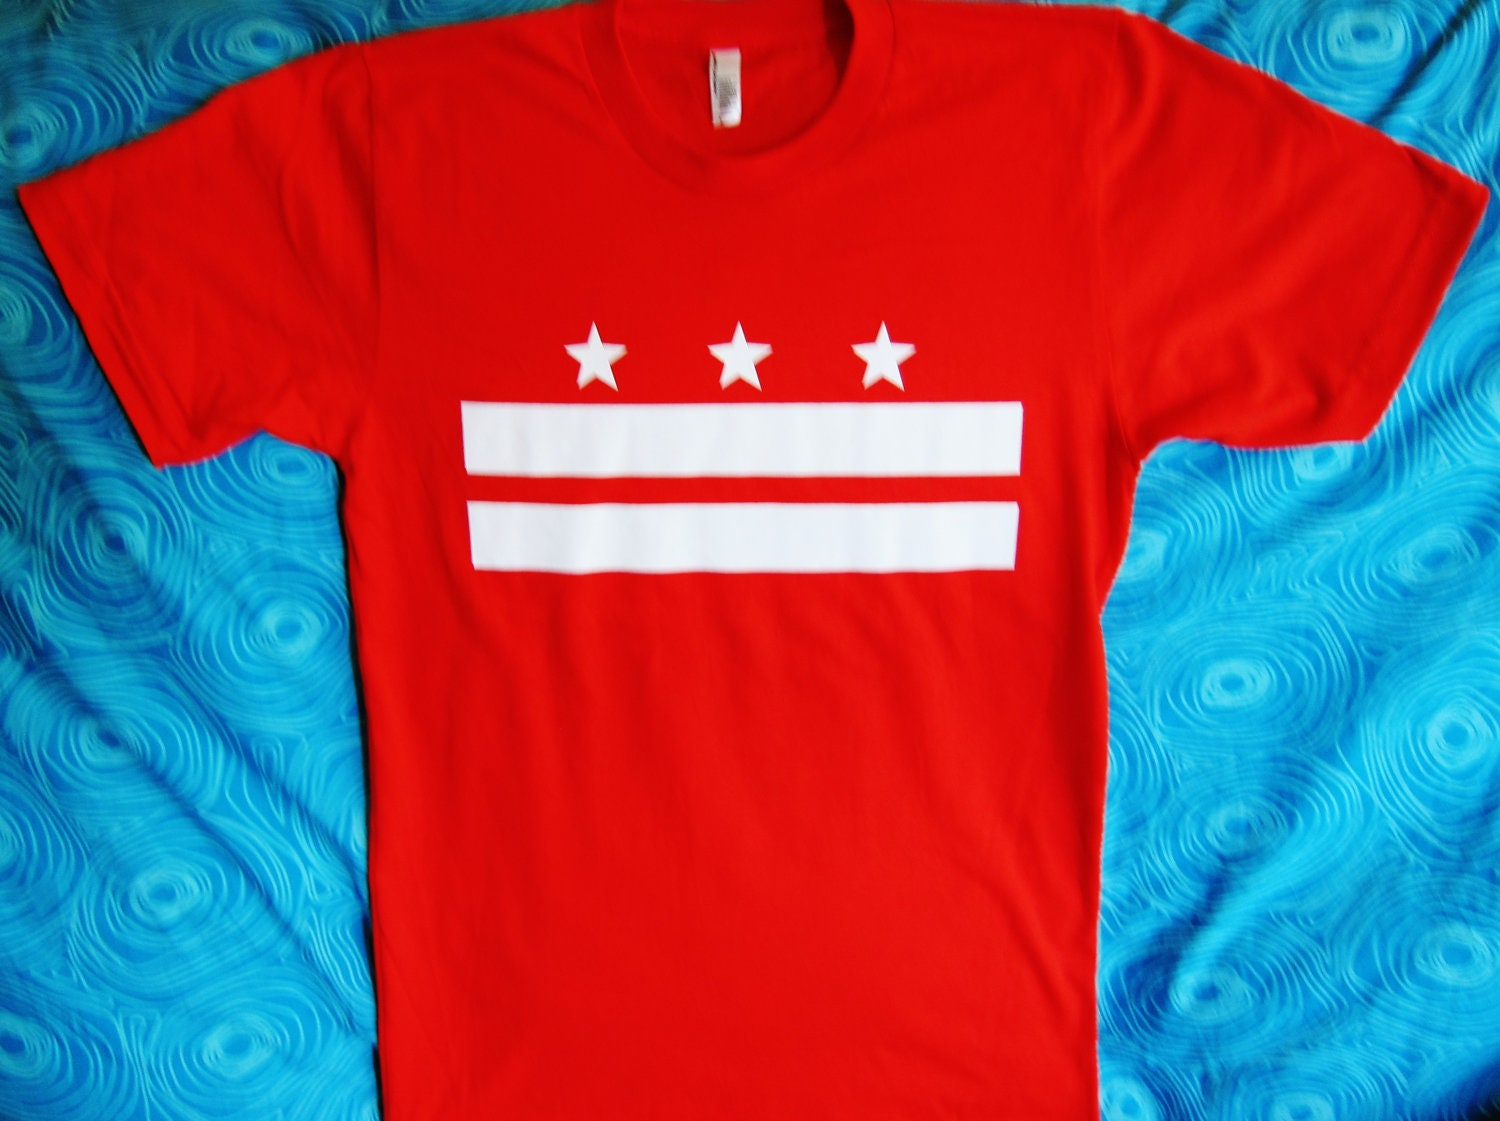 District of columbia flag t shirt by freddyvanderbaugh on for T shirts printing washington dc